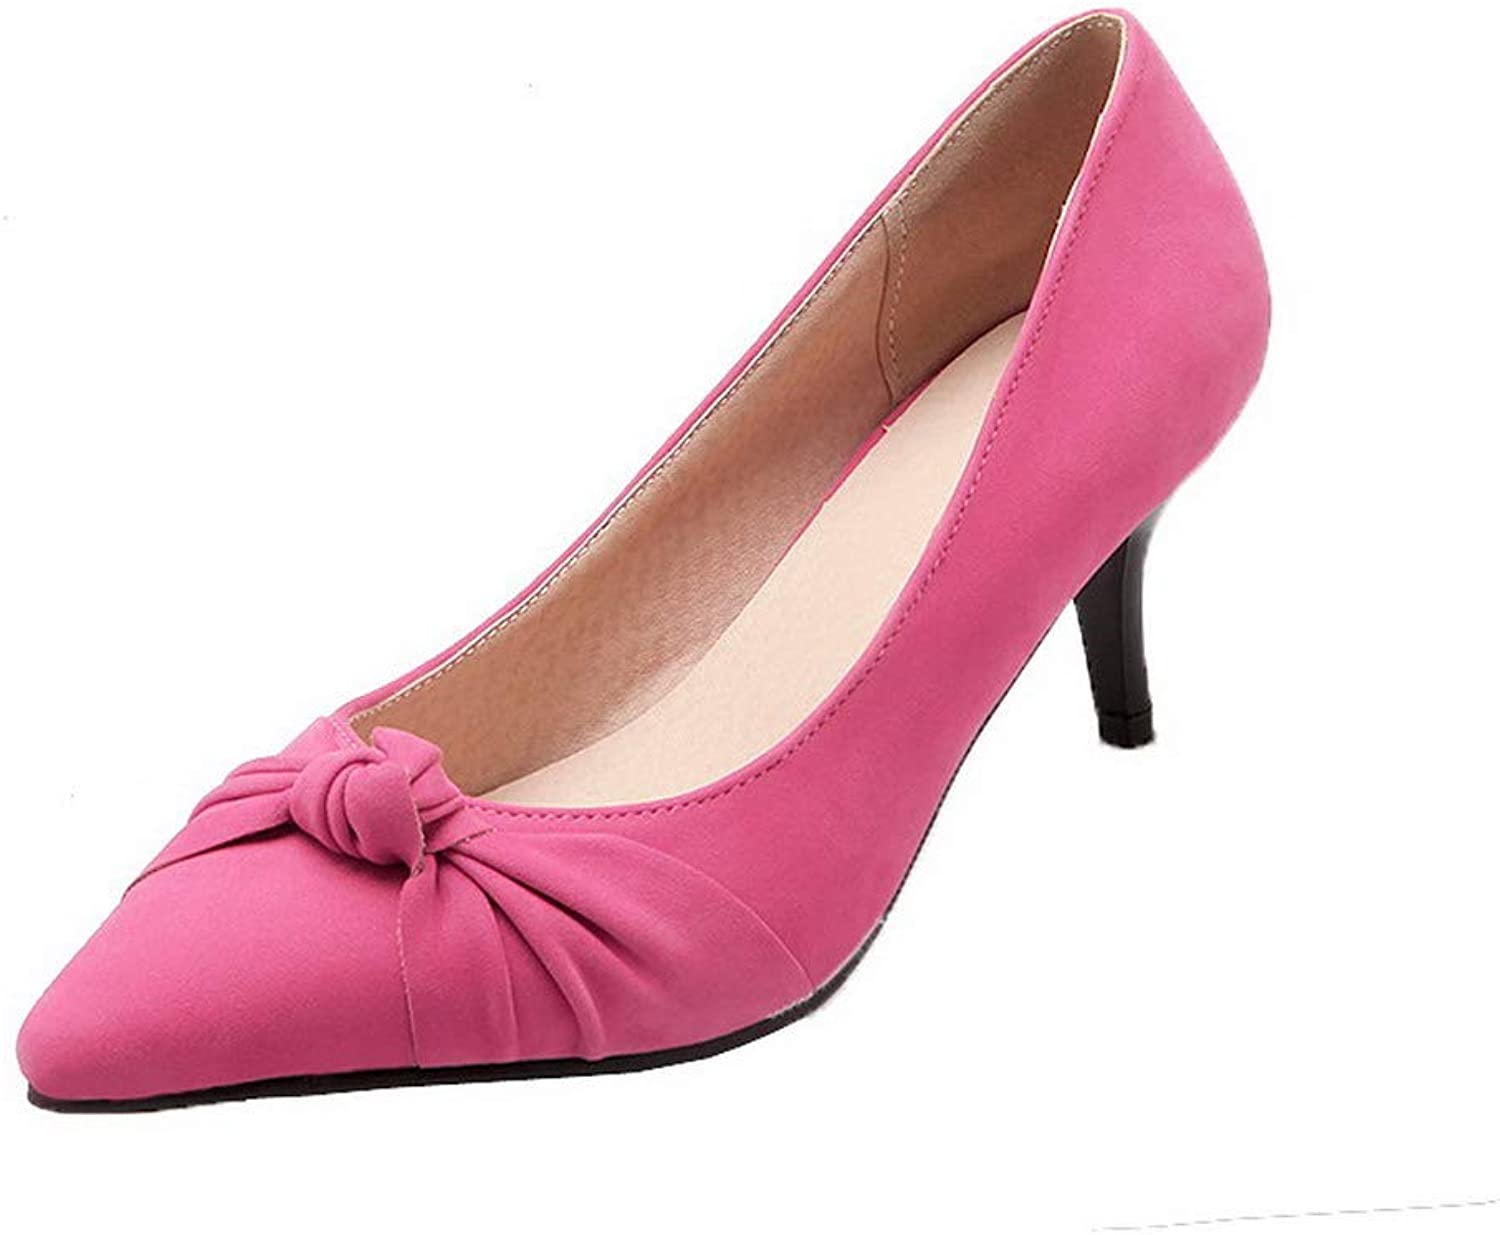 AllhqFashion Women's Closed-Toe Pull-On Frosted Solid Kitten-Heels Pumps-shoes,FBUDC015844